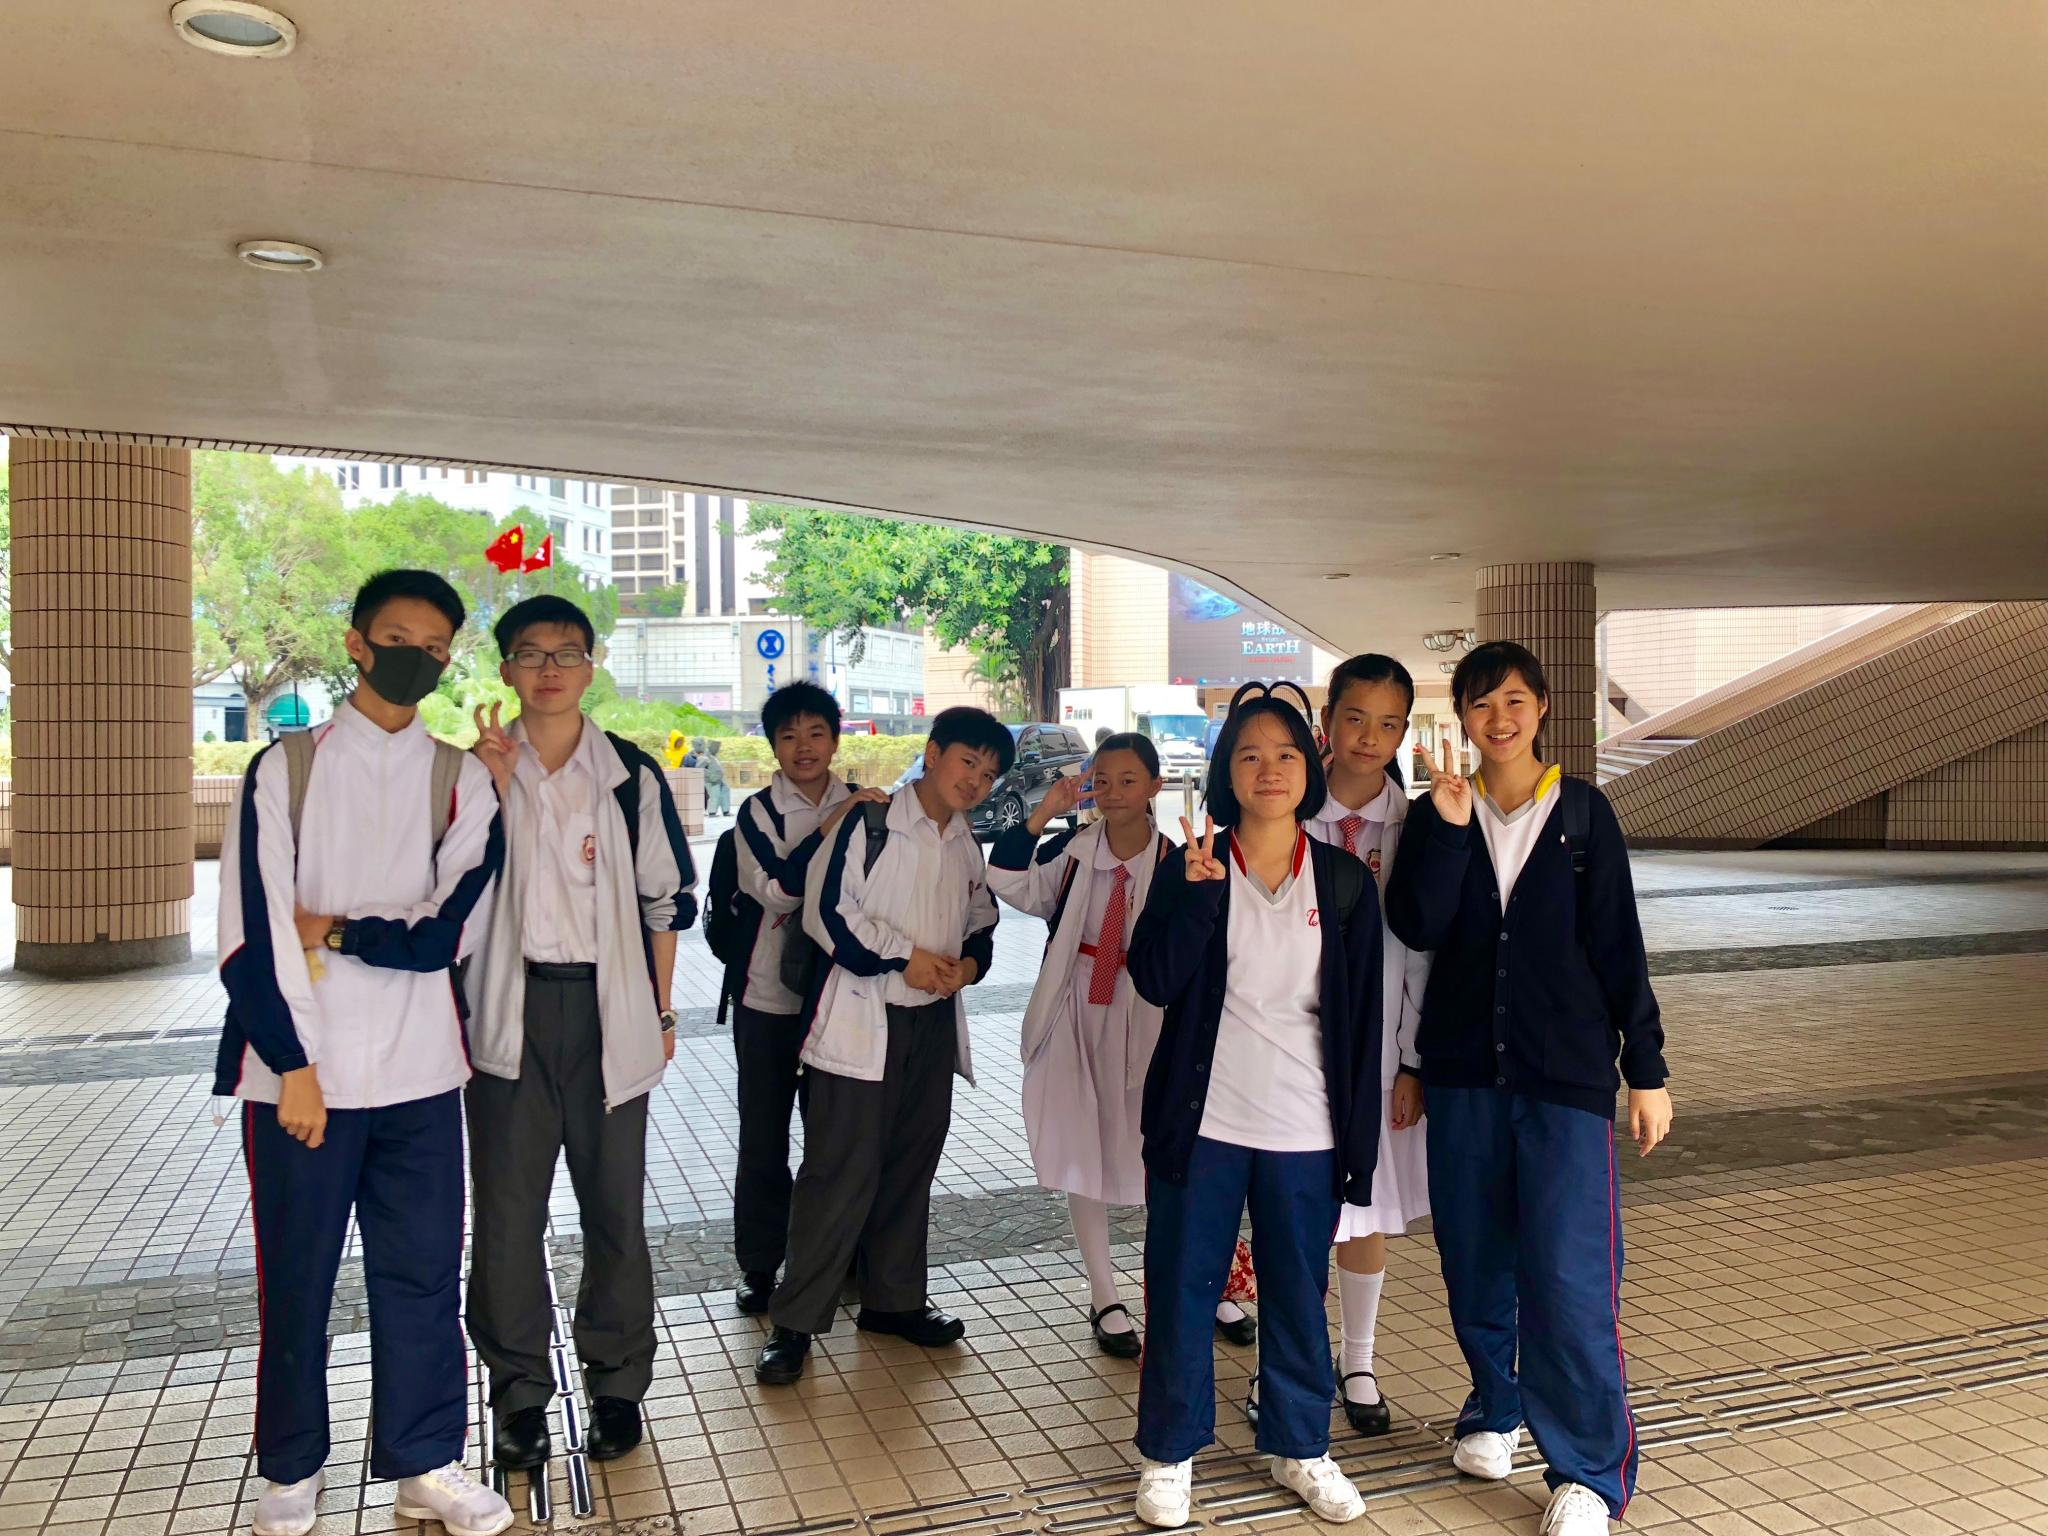 The students arrived the Hong Kong Cultural Centre.